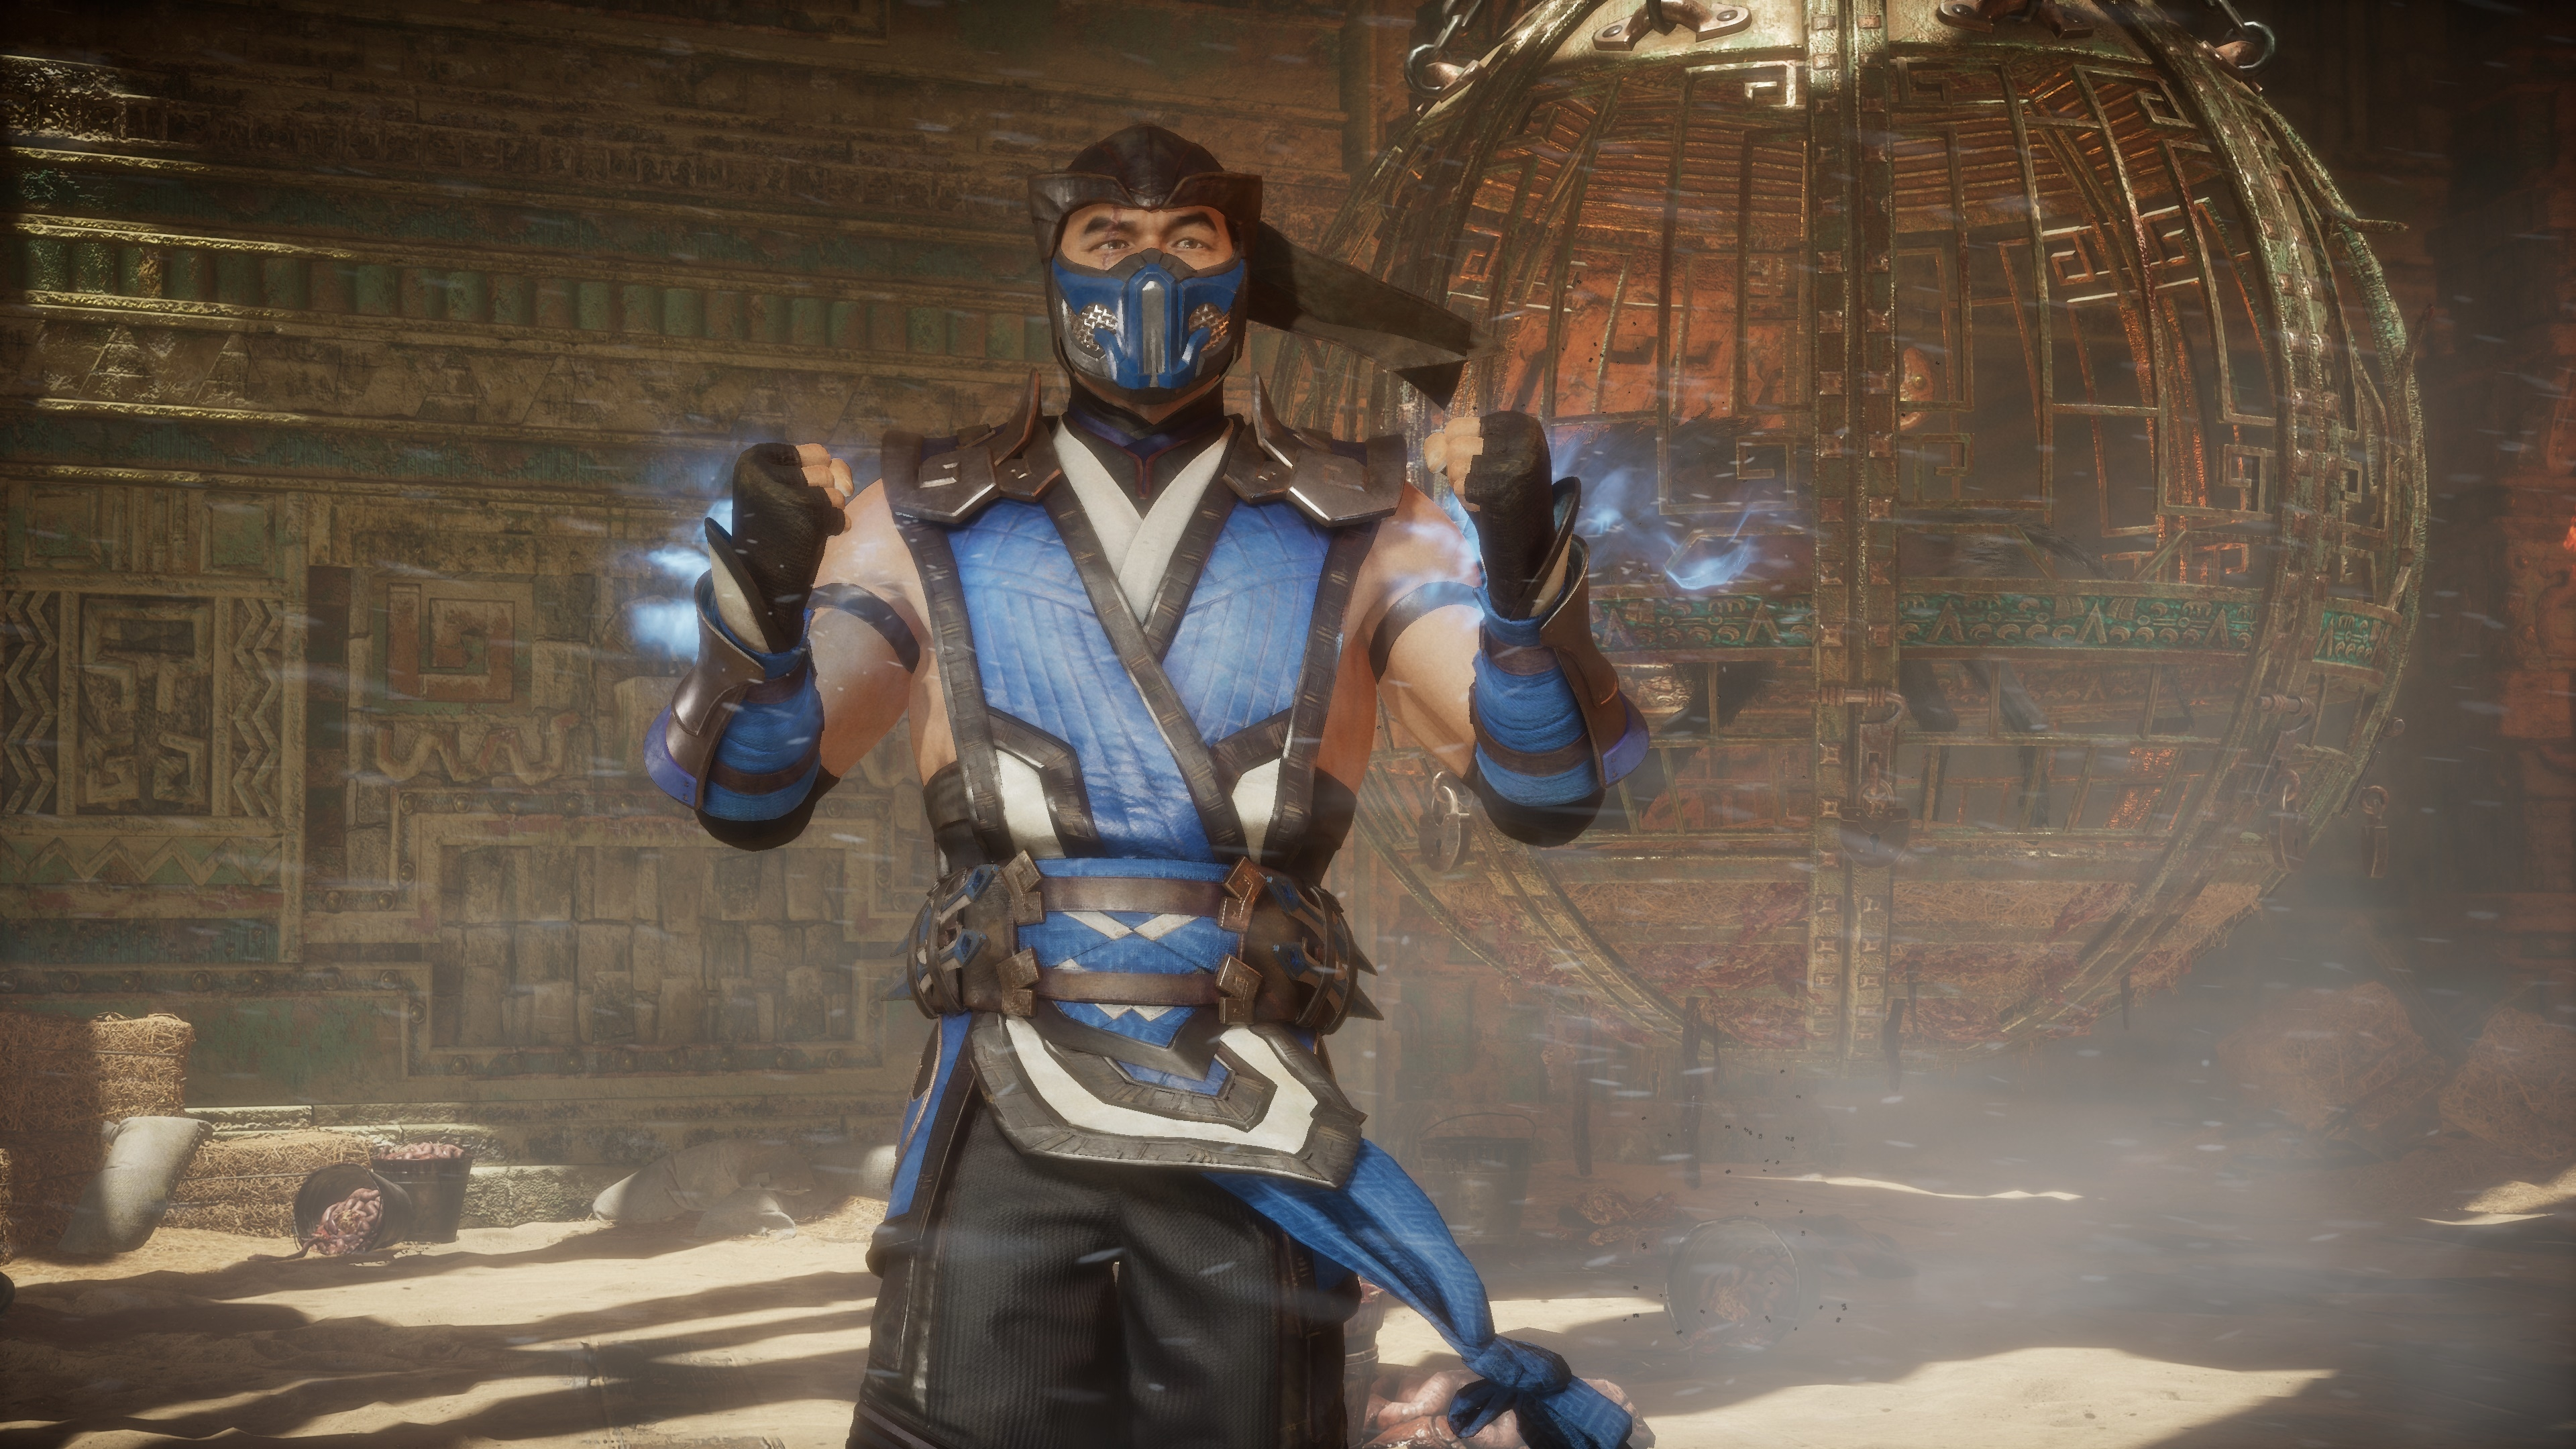 1400x1050 Sub Zero In Mortal Kombat 11 1400x1050 Resolution